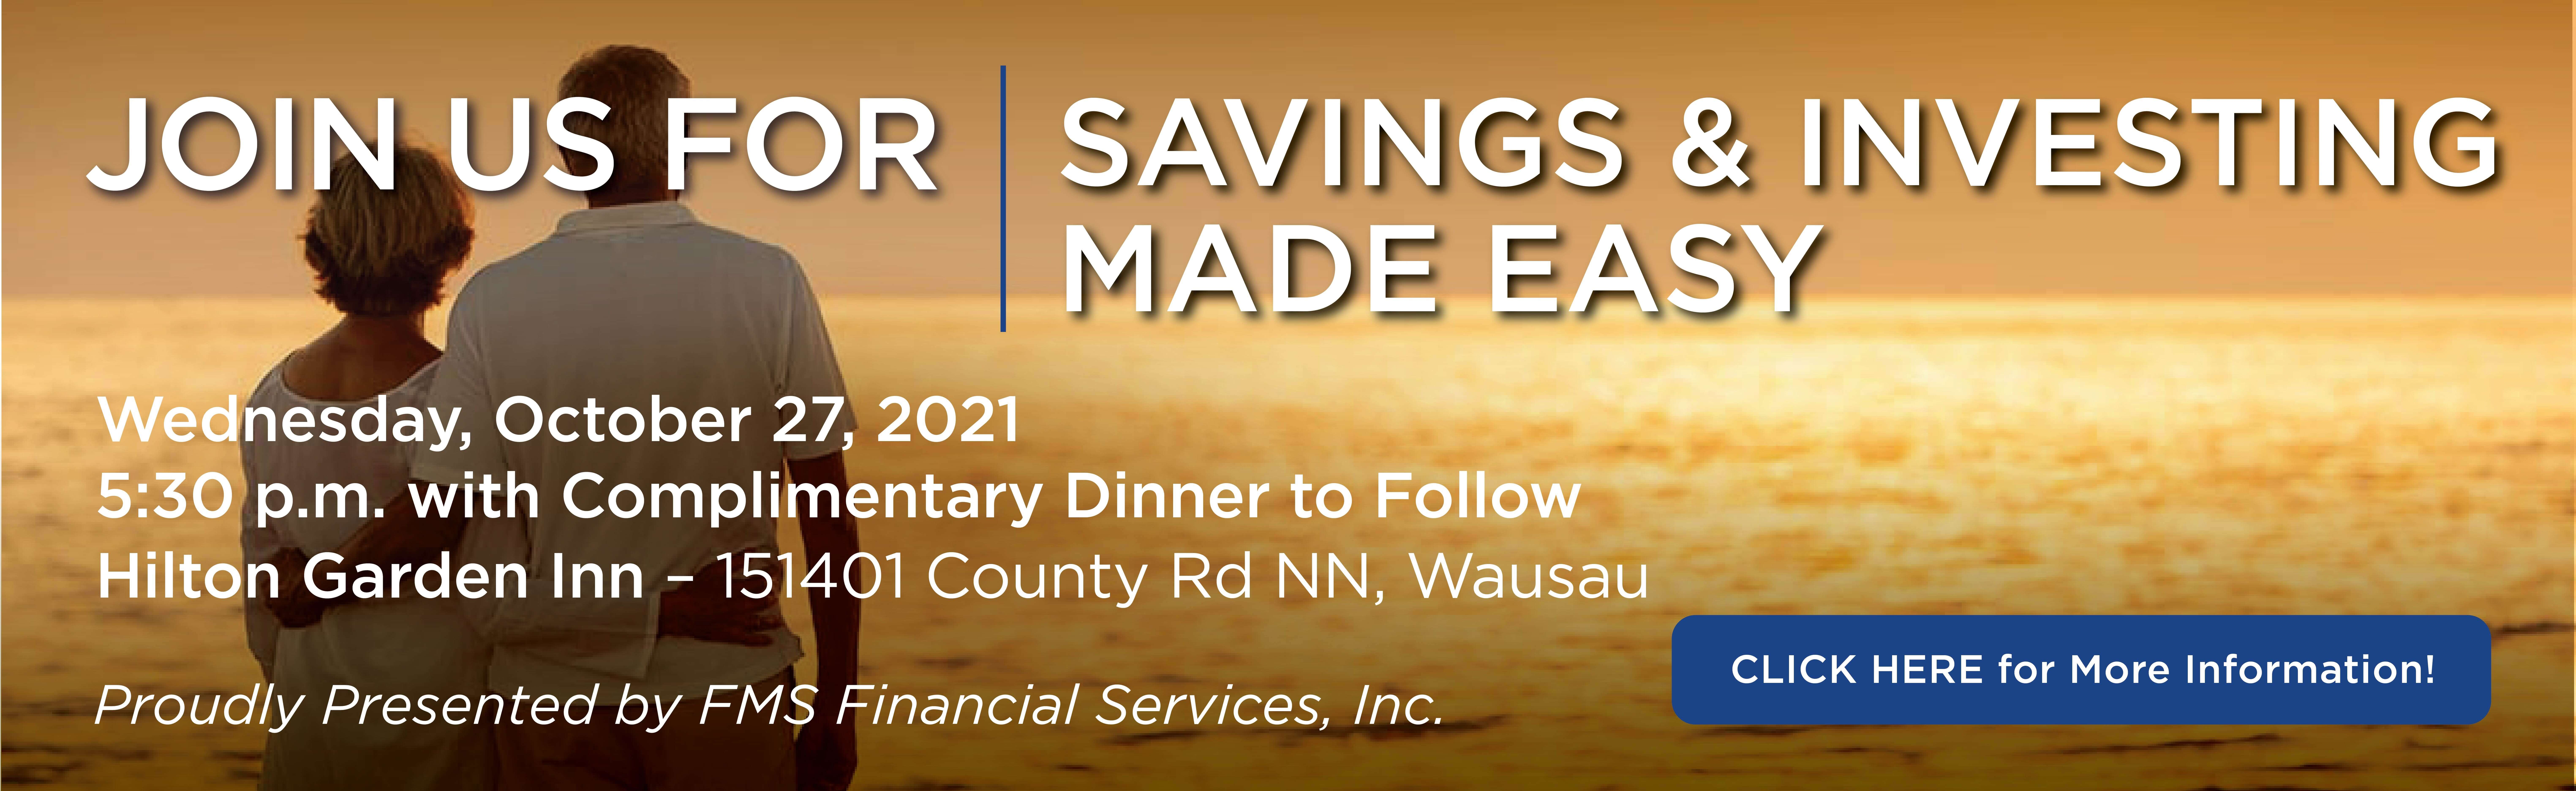 Join us for a free seminar and complimentary dinner